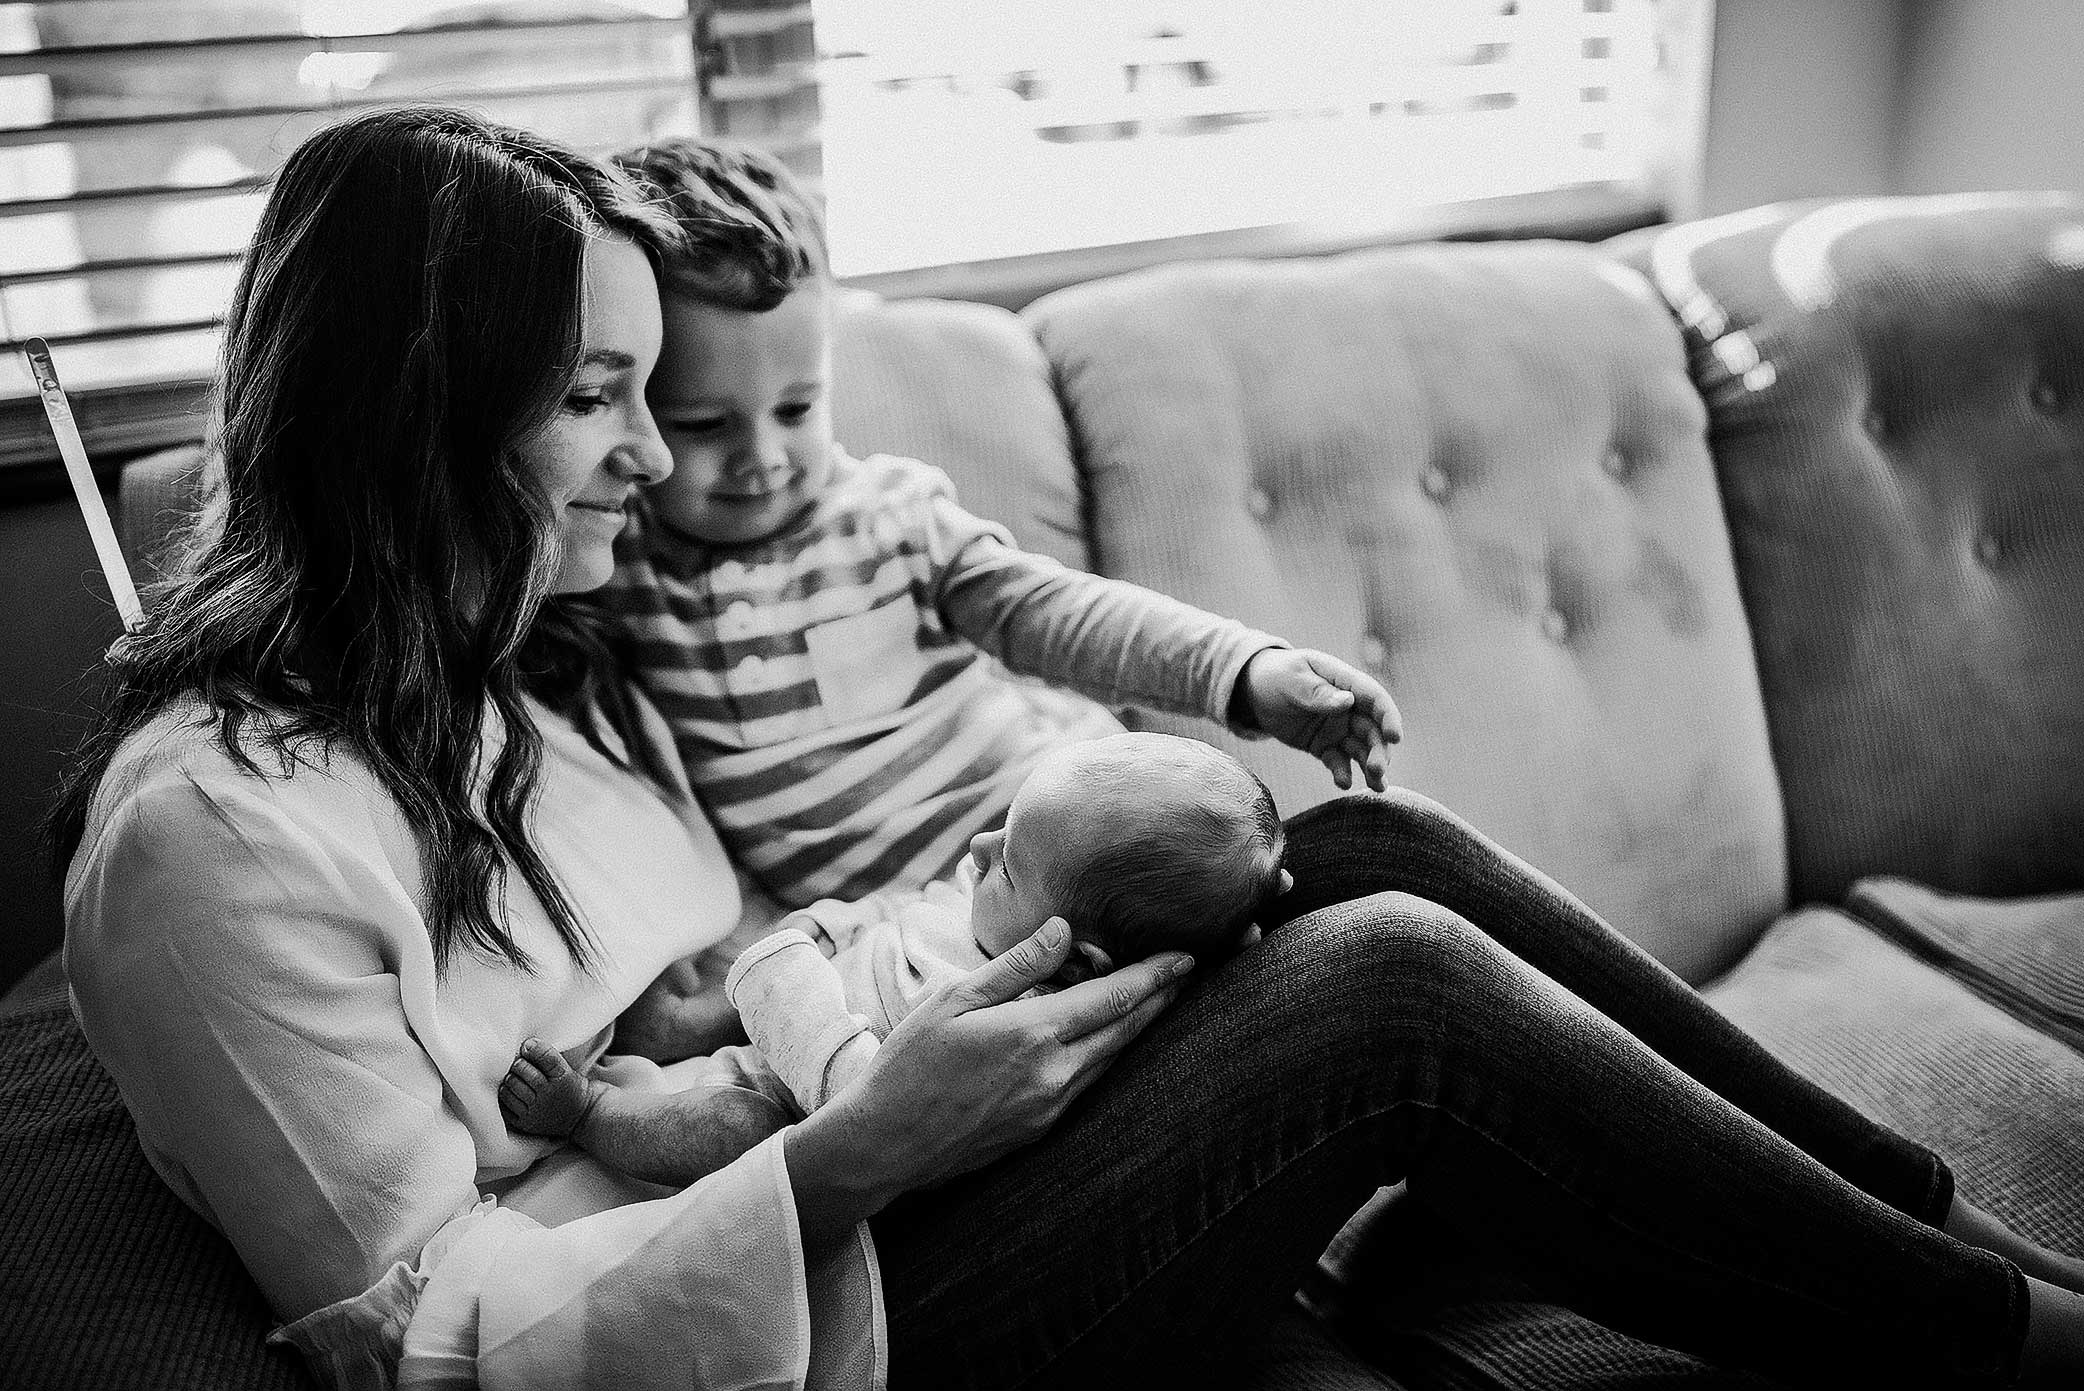 shelby-schiller-photography-lifestyle-newborn-big-brother-mom-and-baby-on-couch.jpg